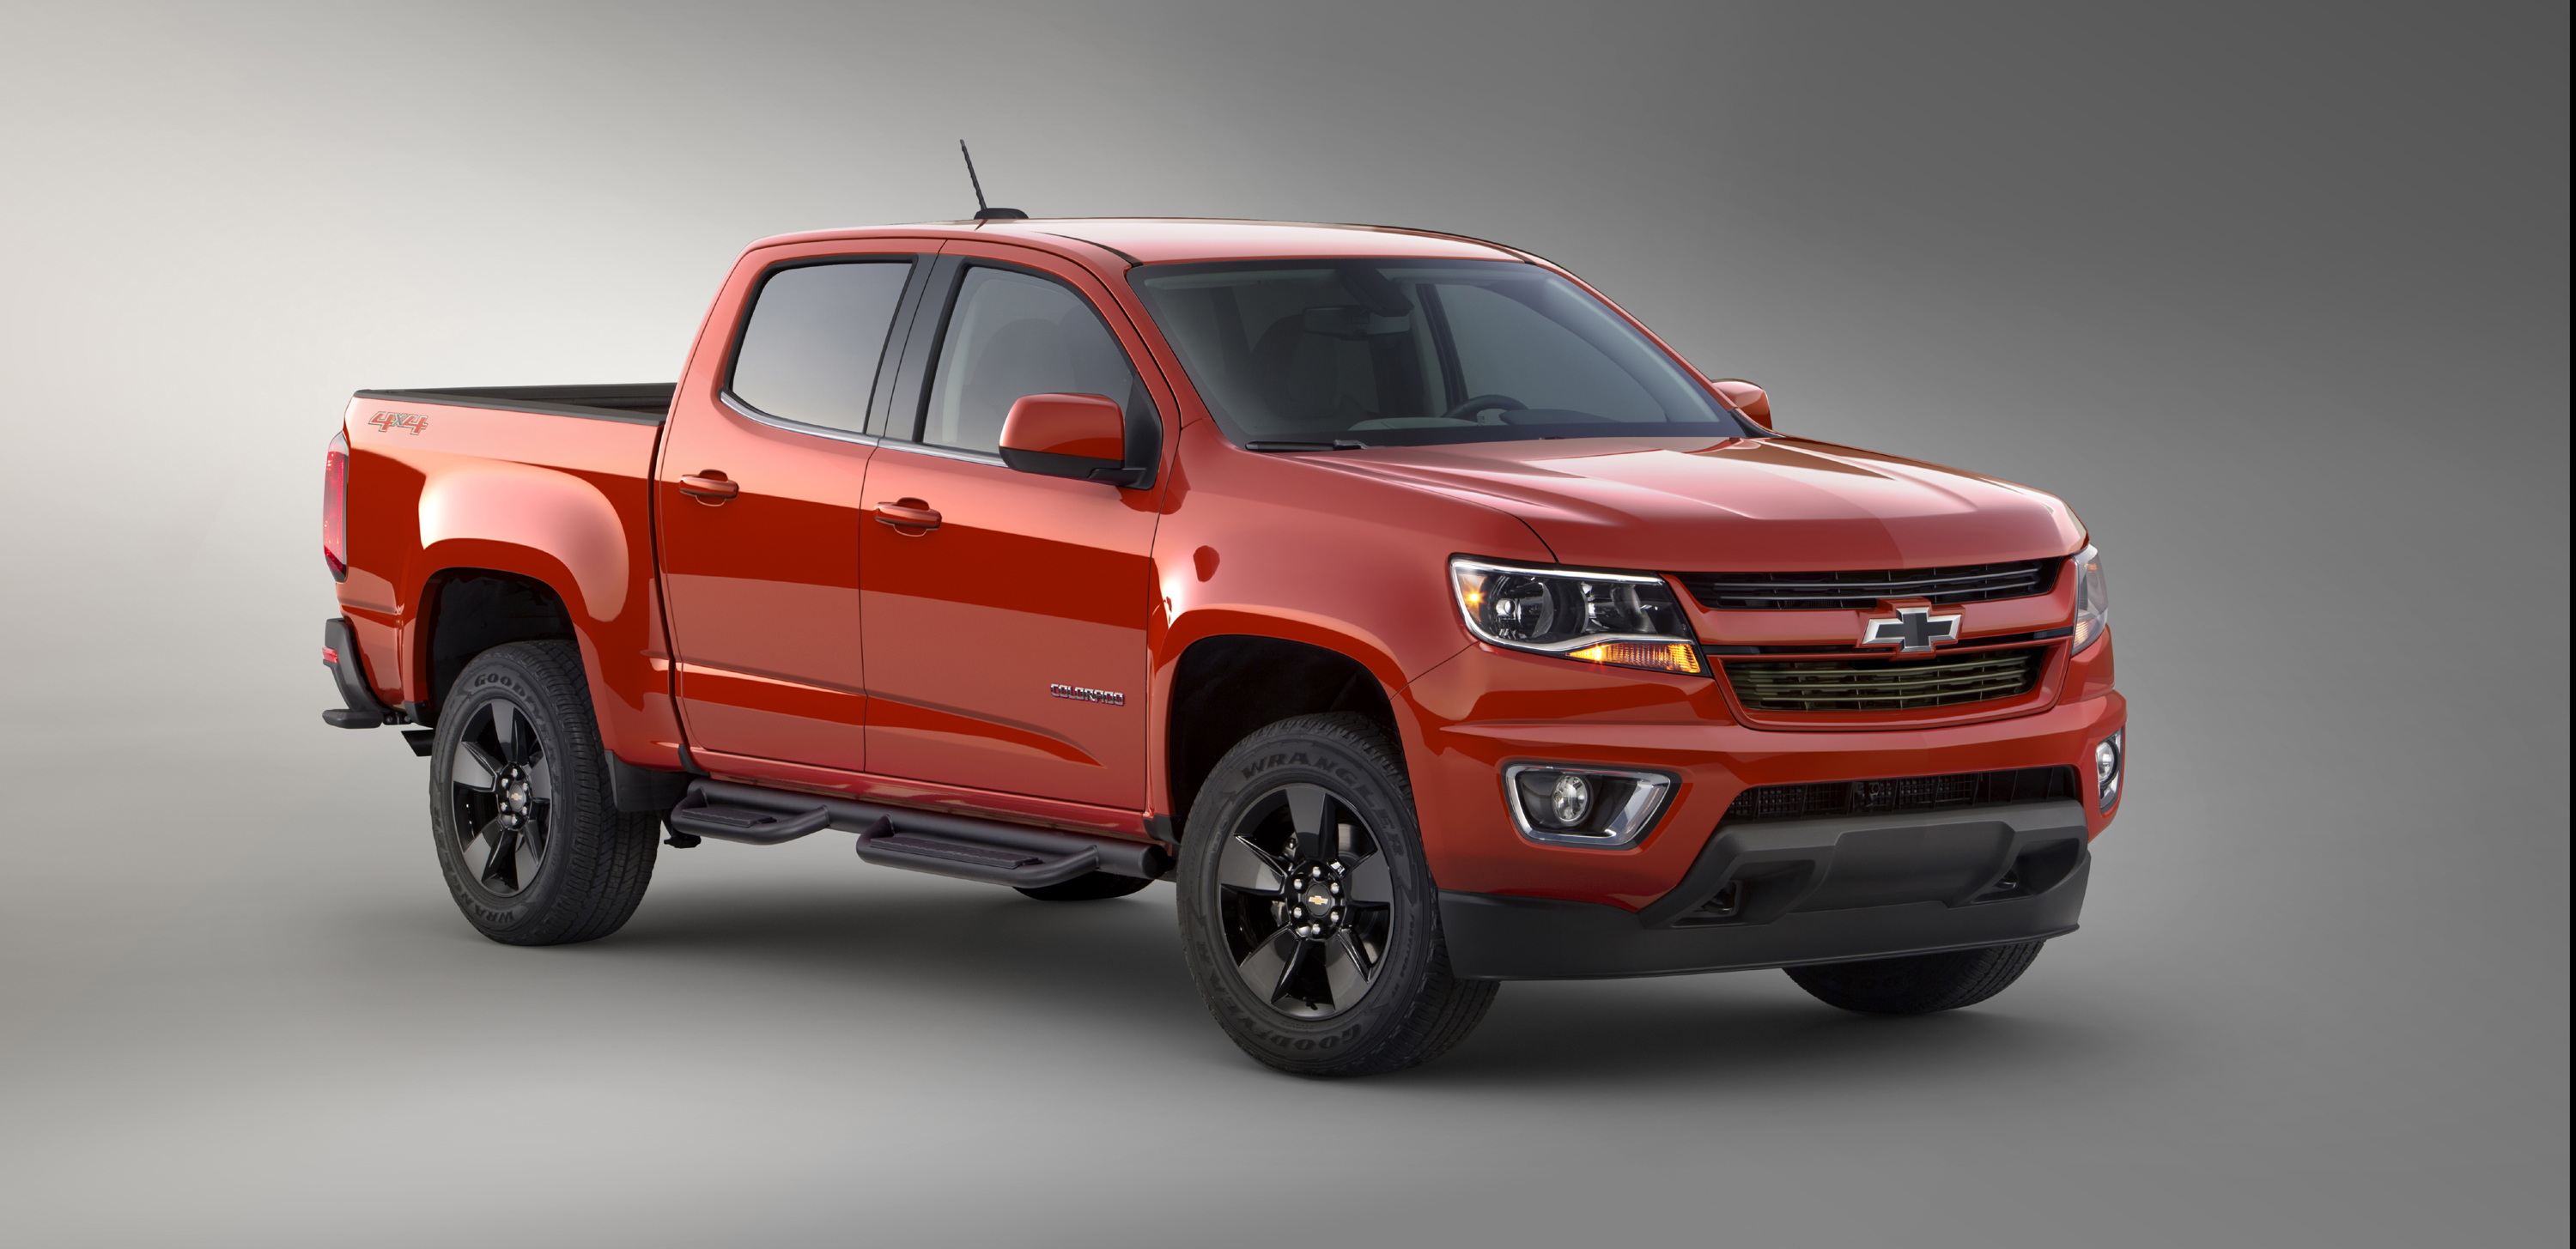 2015 Chevrolet Colorado Chevy Review Ratings Specs Prices And Photos The Car Connection